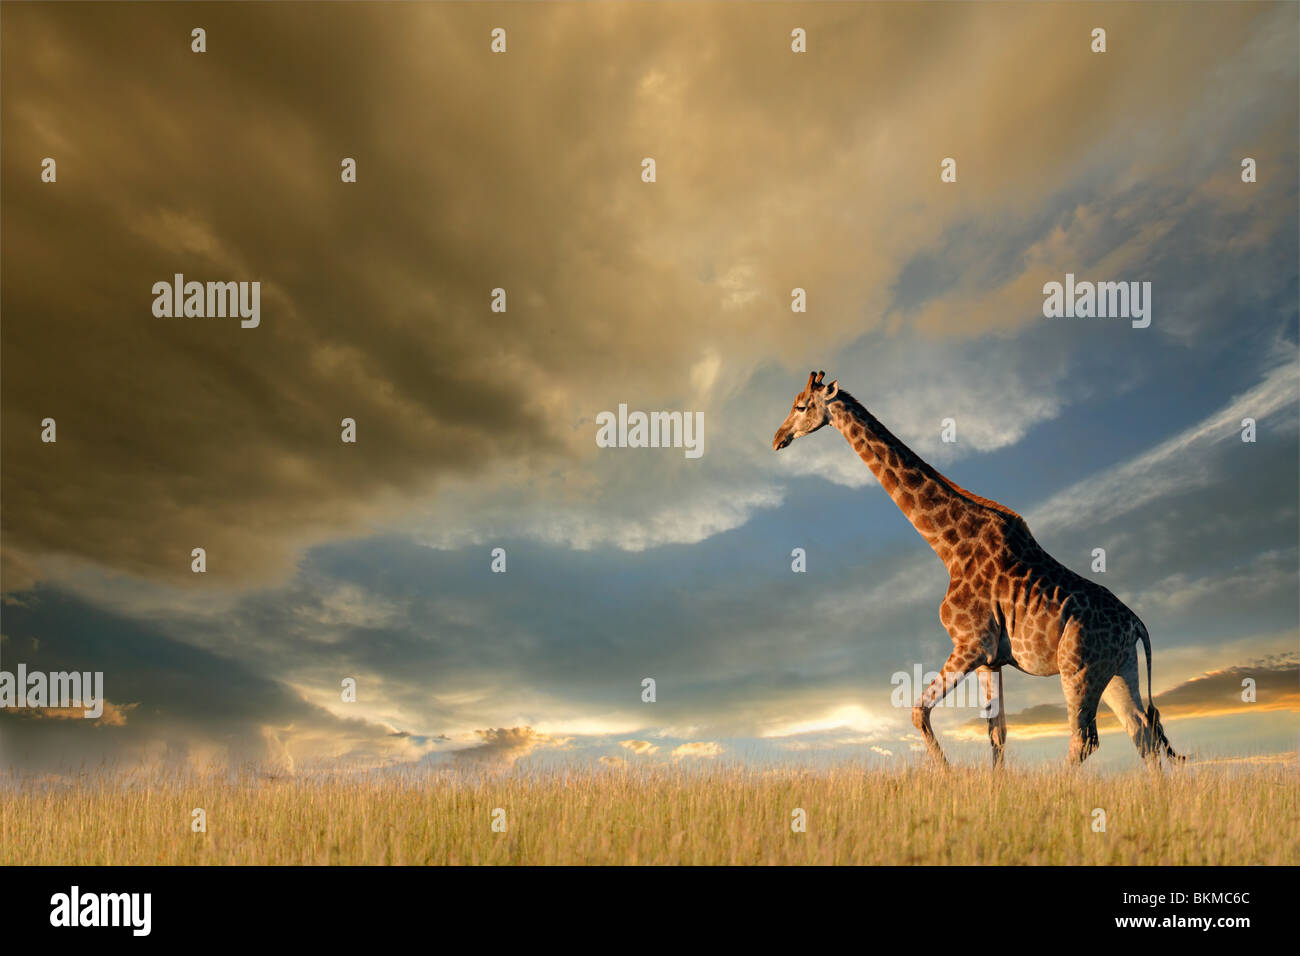 A giraffe walking on the African plains against a dramatic sky Stock Photo